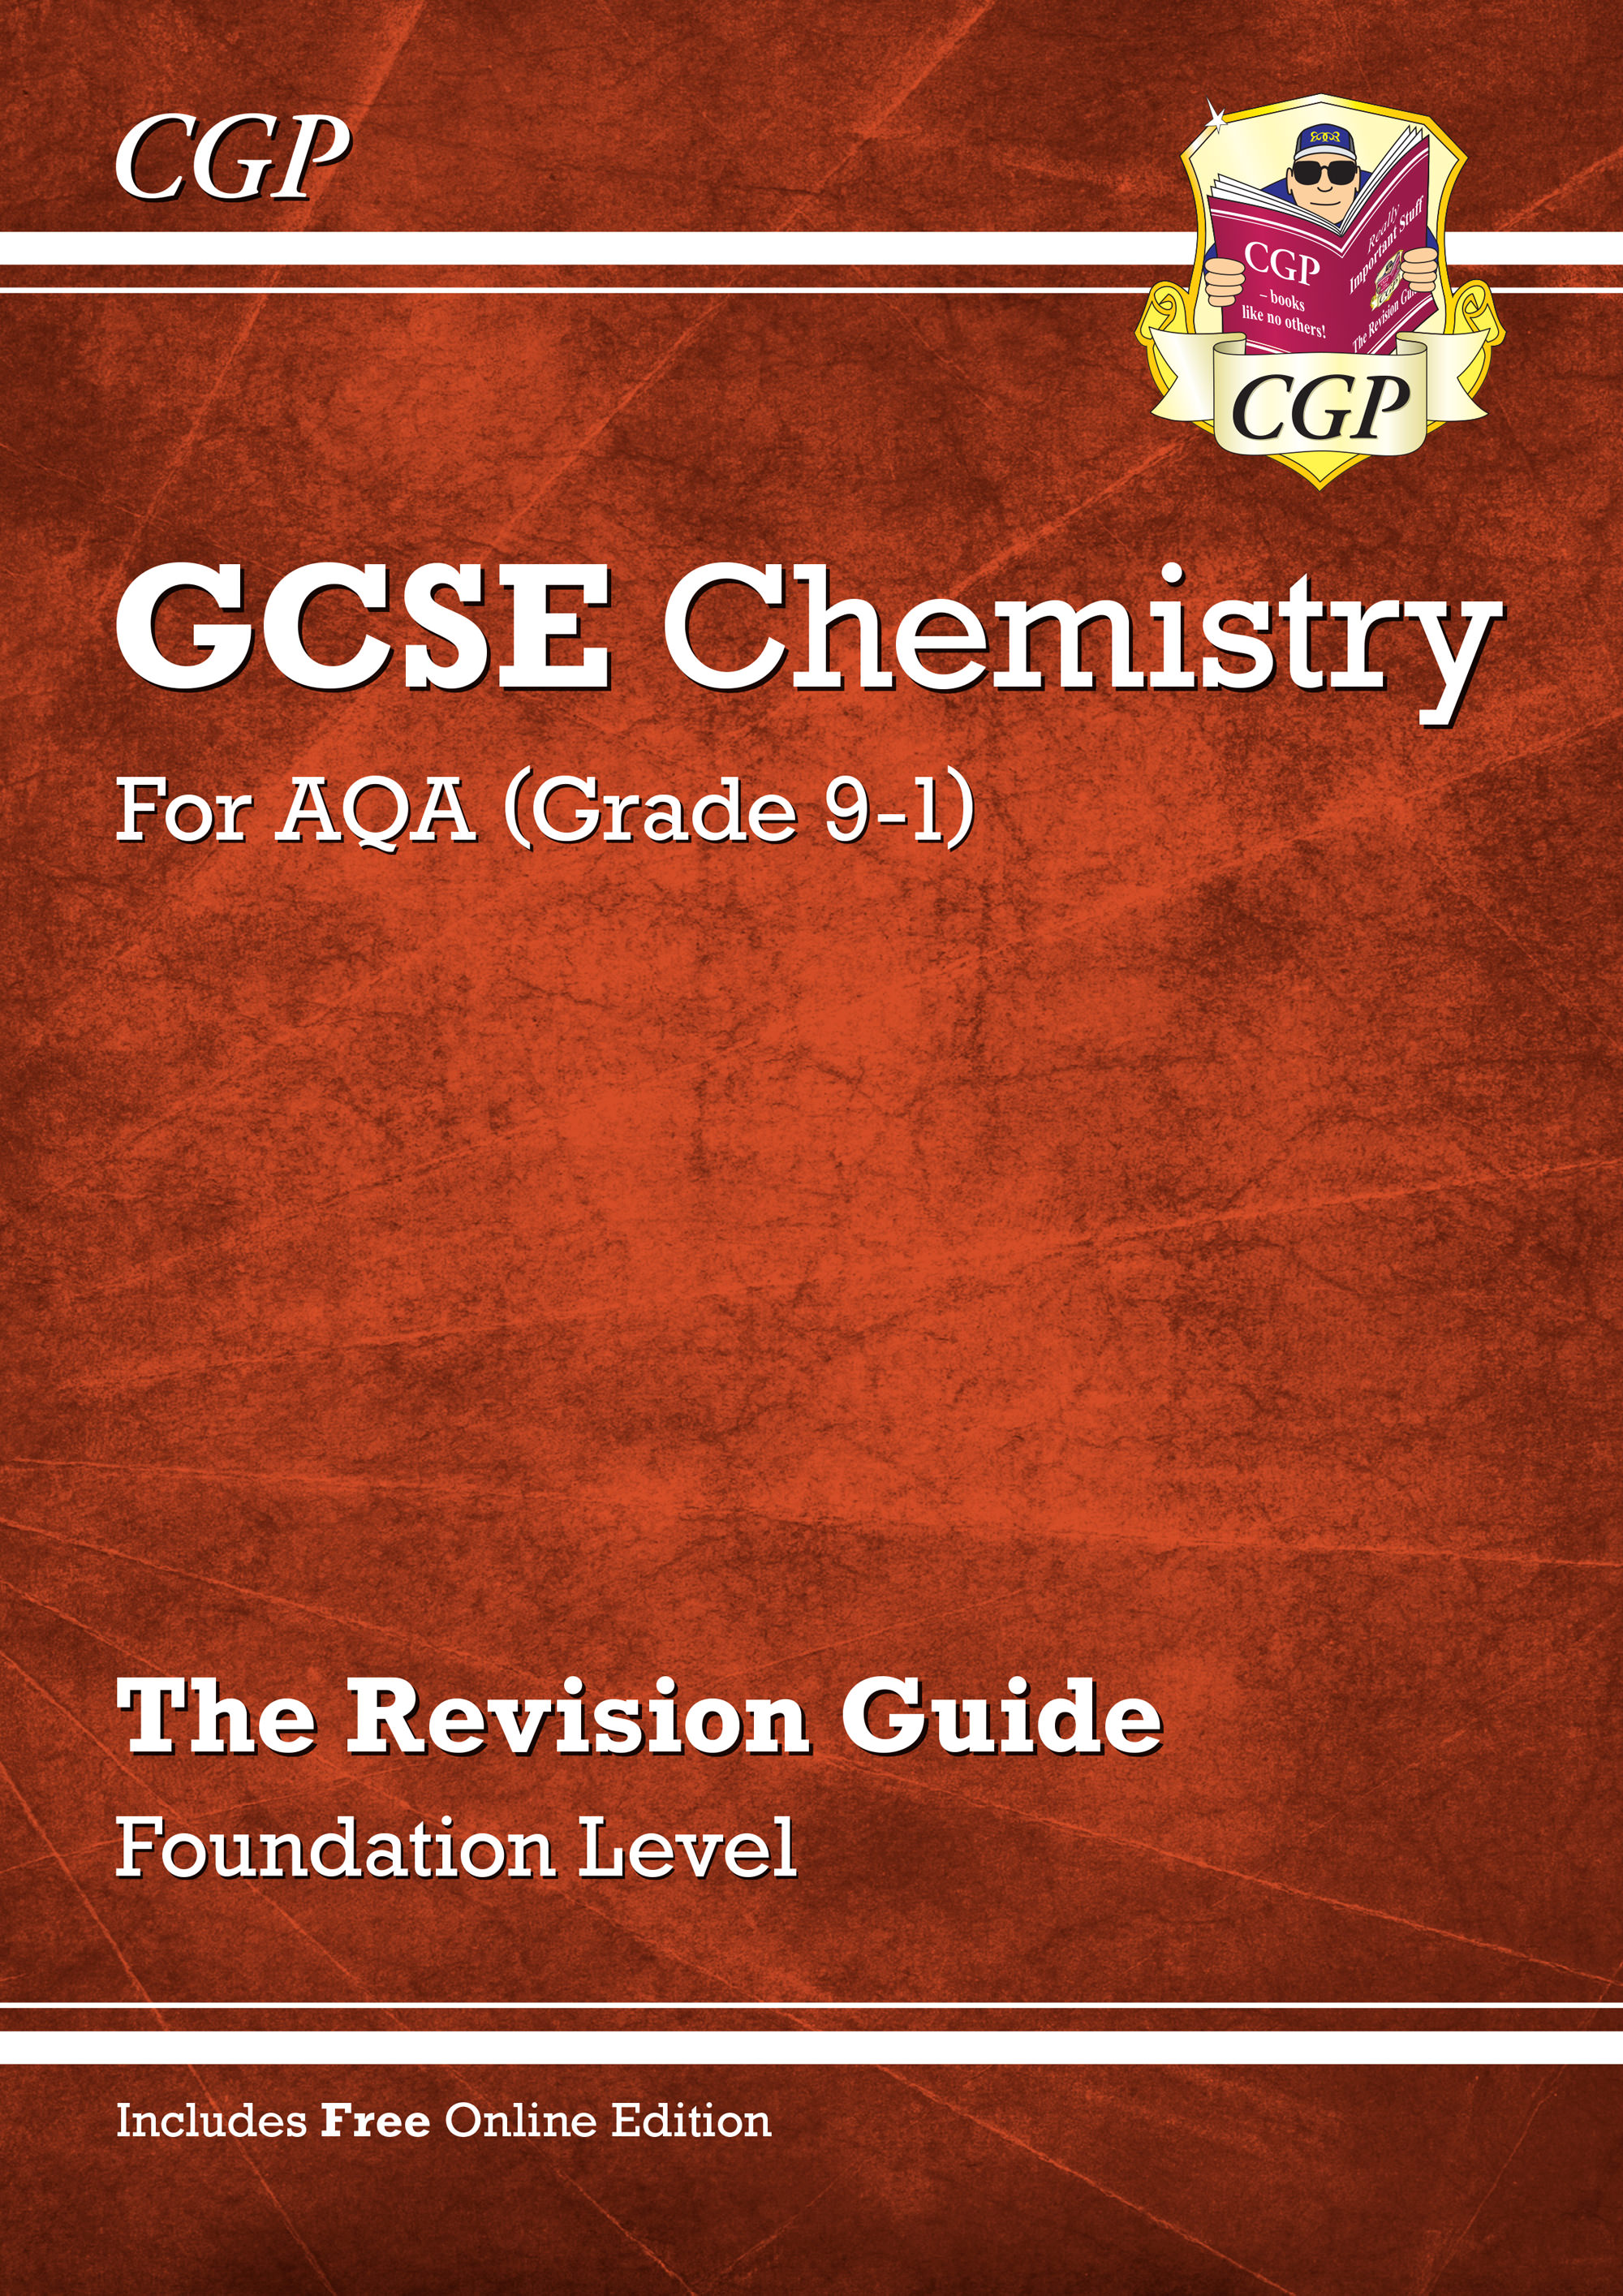 CAFR41 - Grade 9-1 GCSE Chemistry: AQA Revision Guide with Online Edition - Foundation